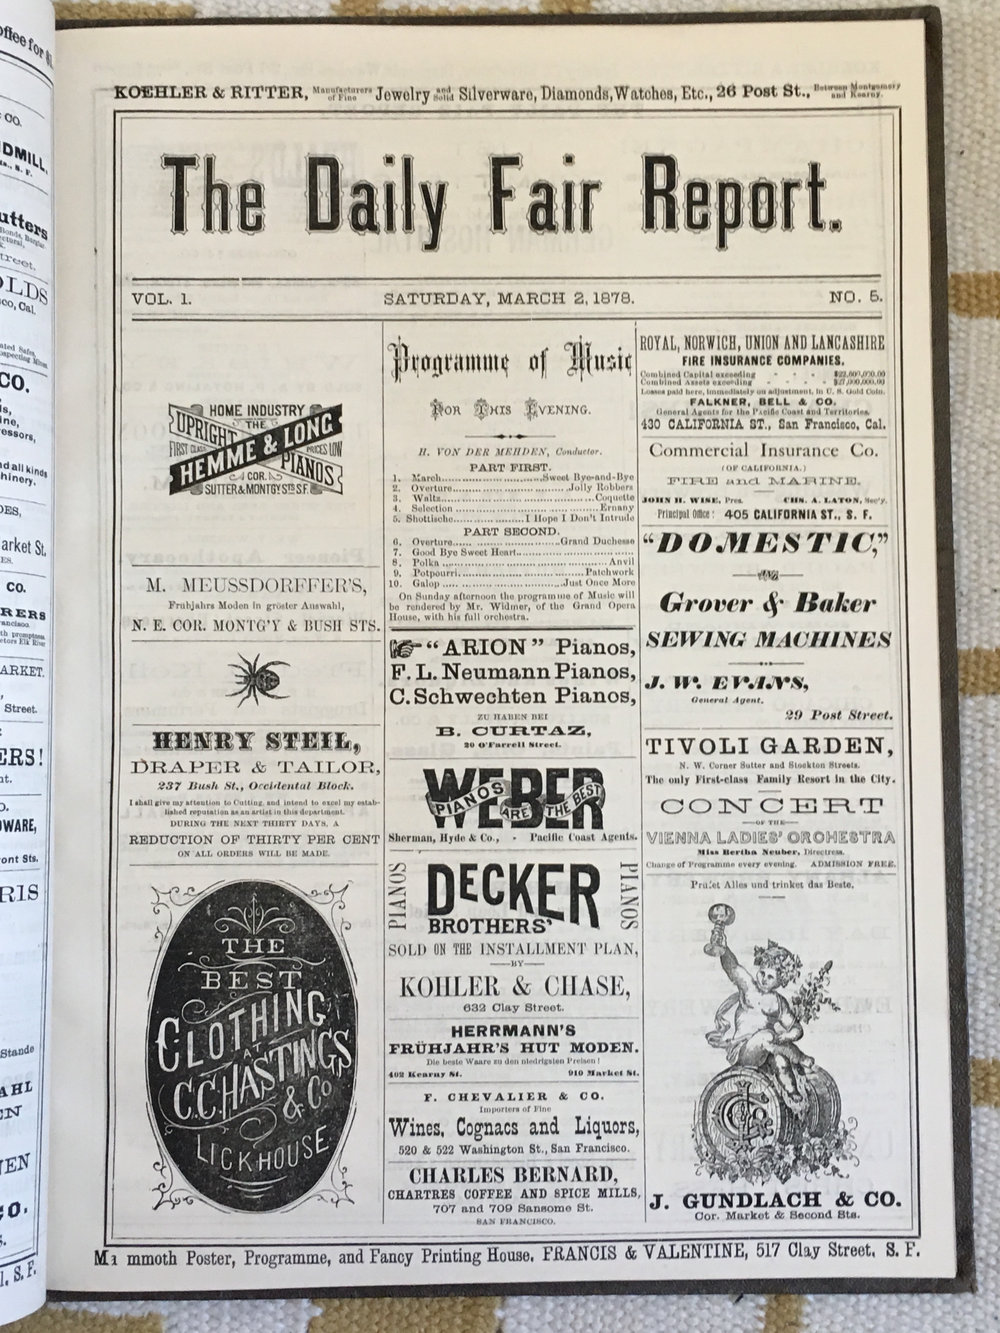 Front page of  The Daily Fair Report,  vol. 1, no. 5,  Saturday, March 2, 1878.  The  Report  was a souvenir paper produced during the German Ladies Fair held in San Francisco from 26 February to 5 March 1878, to help raise money for the building of a new German Hospital in San Francisco after the previous German Hospital was destroyed in a fire. Image courtesy of Scott Brown of Eureka Books, in Euke, Calif.